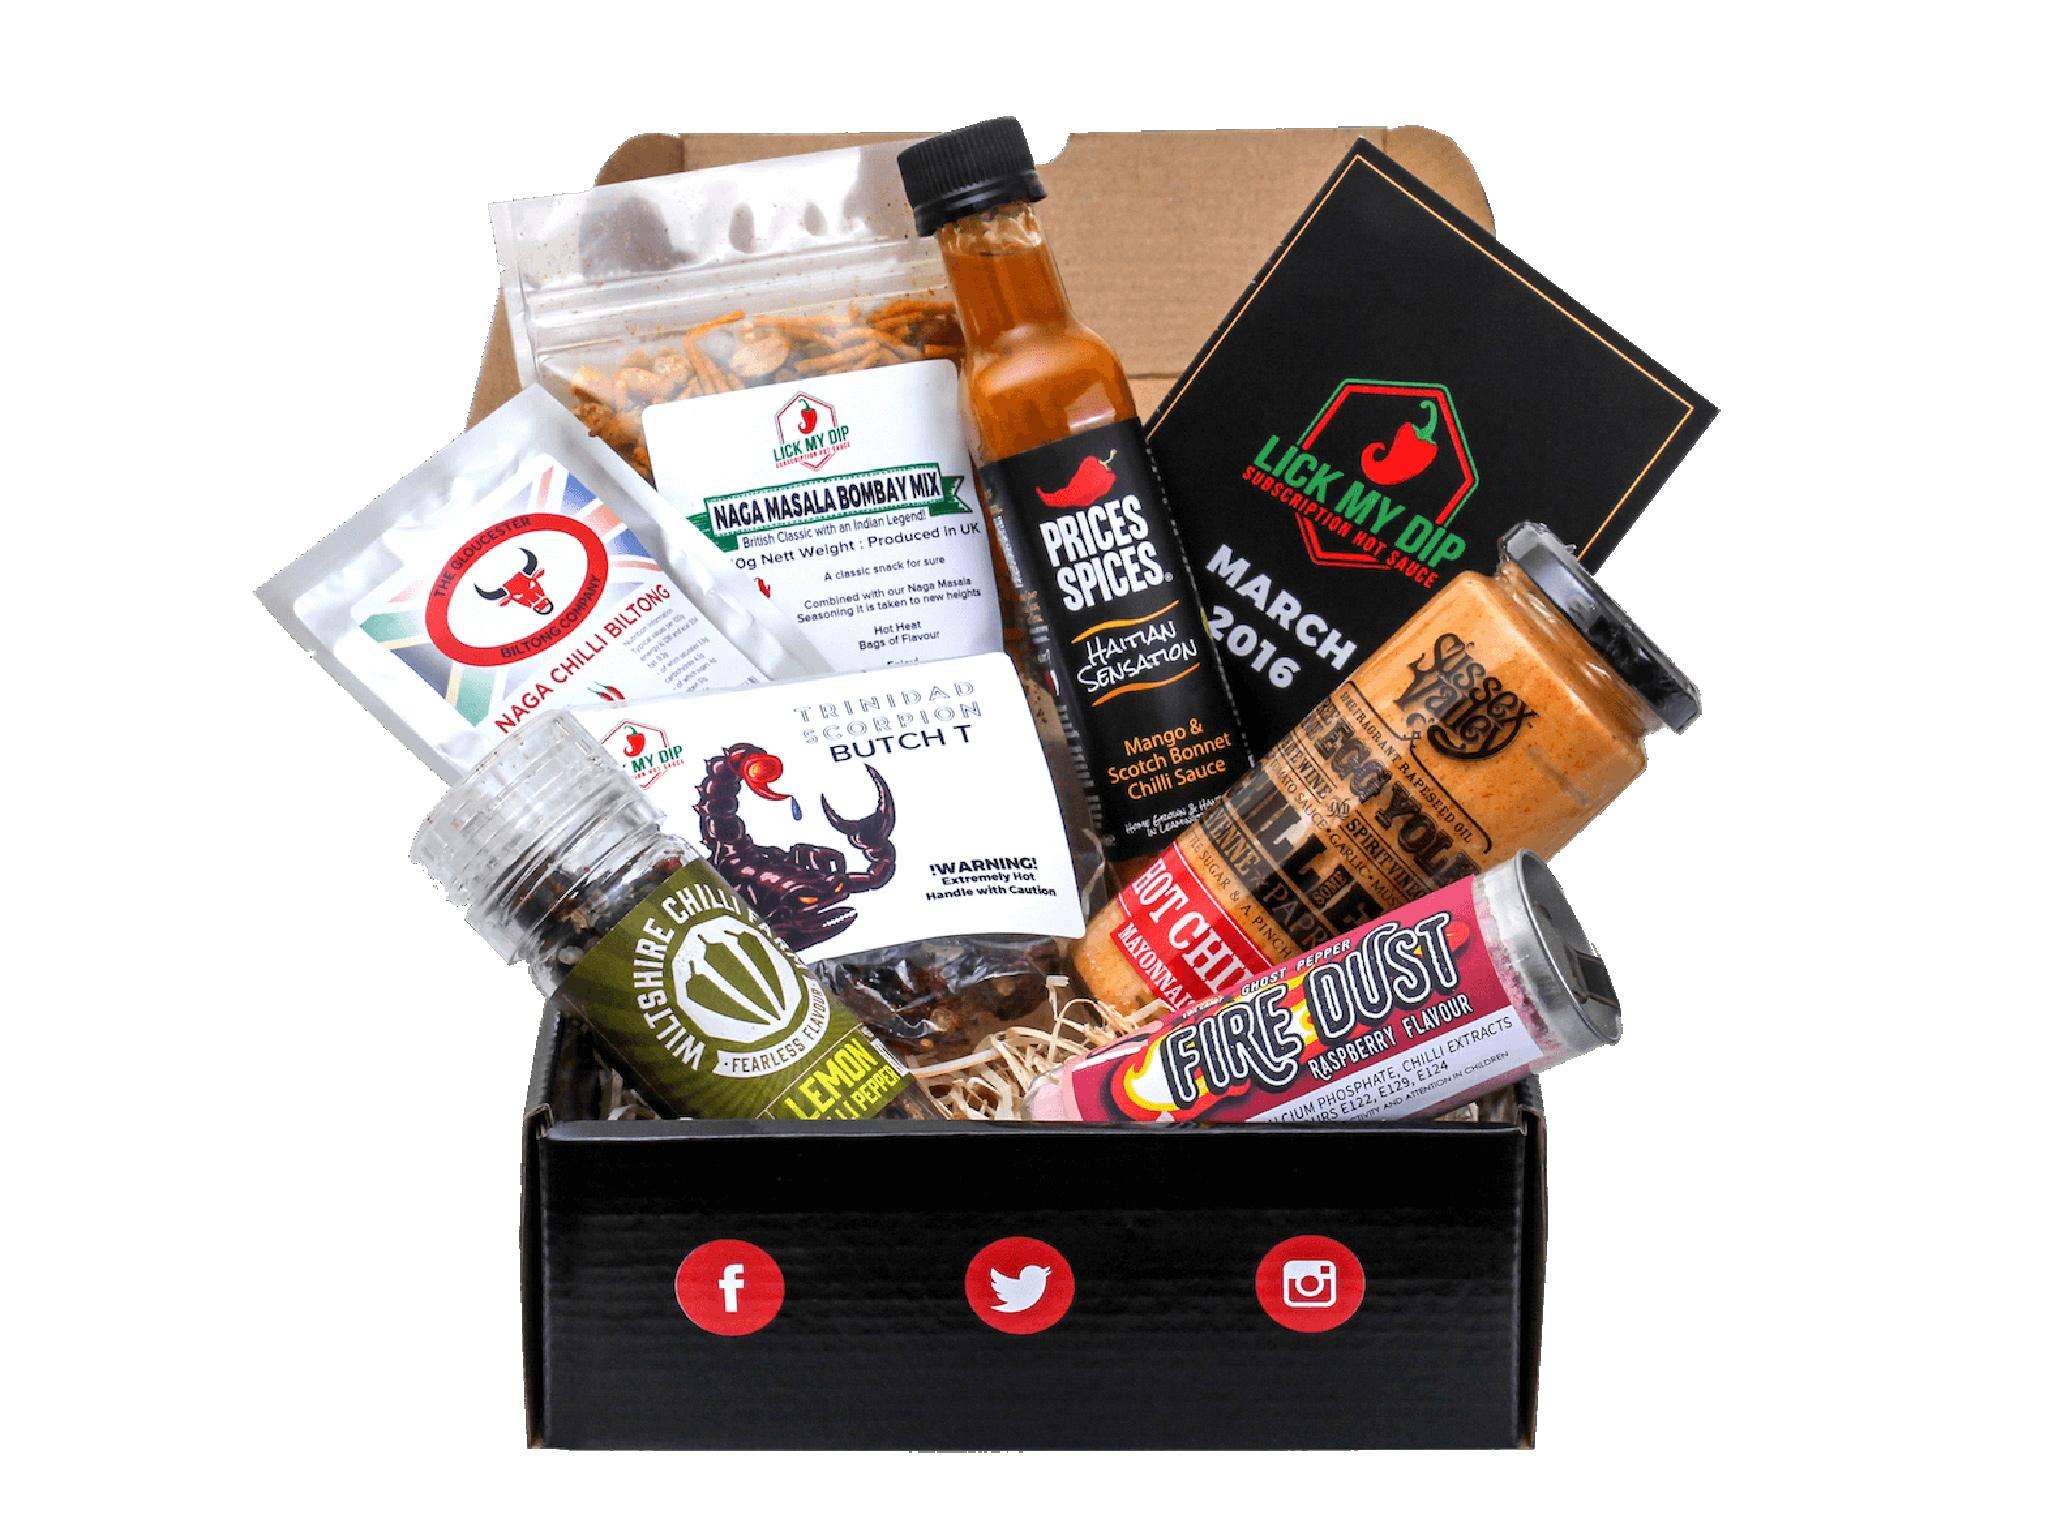 15 best food subscription gifts | The Independent